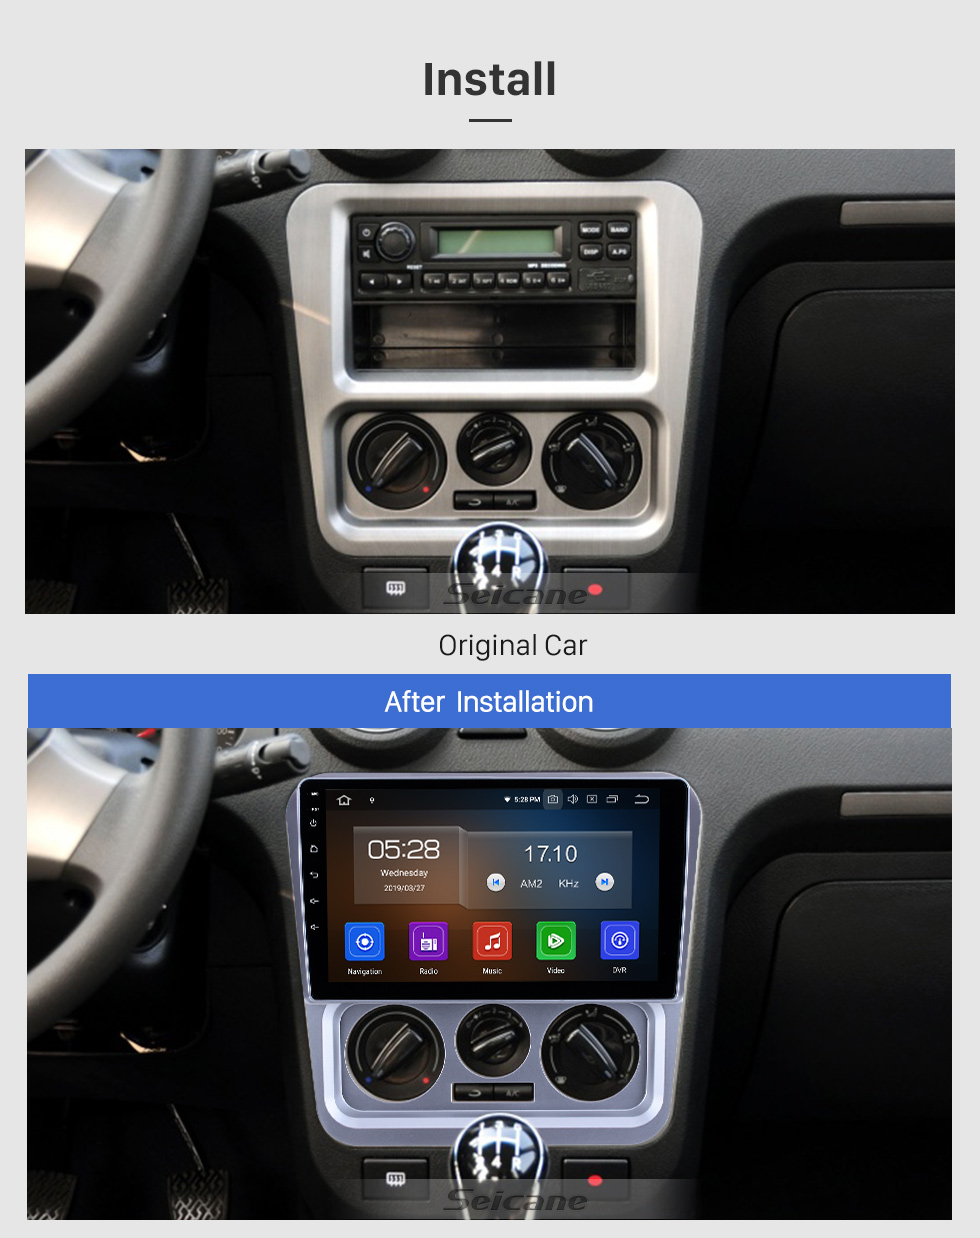 Seicane OEM 9 pouces Android 9.0 pour 2009 2010 2011 2012 2013 Geely Ziyoujian Radio Bluetooth HD Écran tactile Navigation GPS Support Carplay OBD2